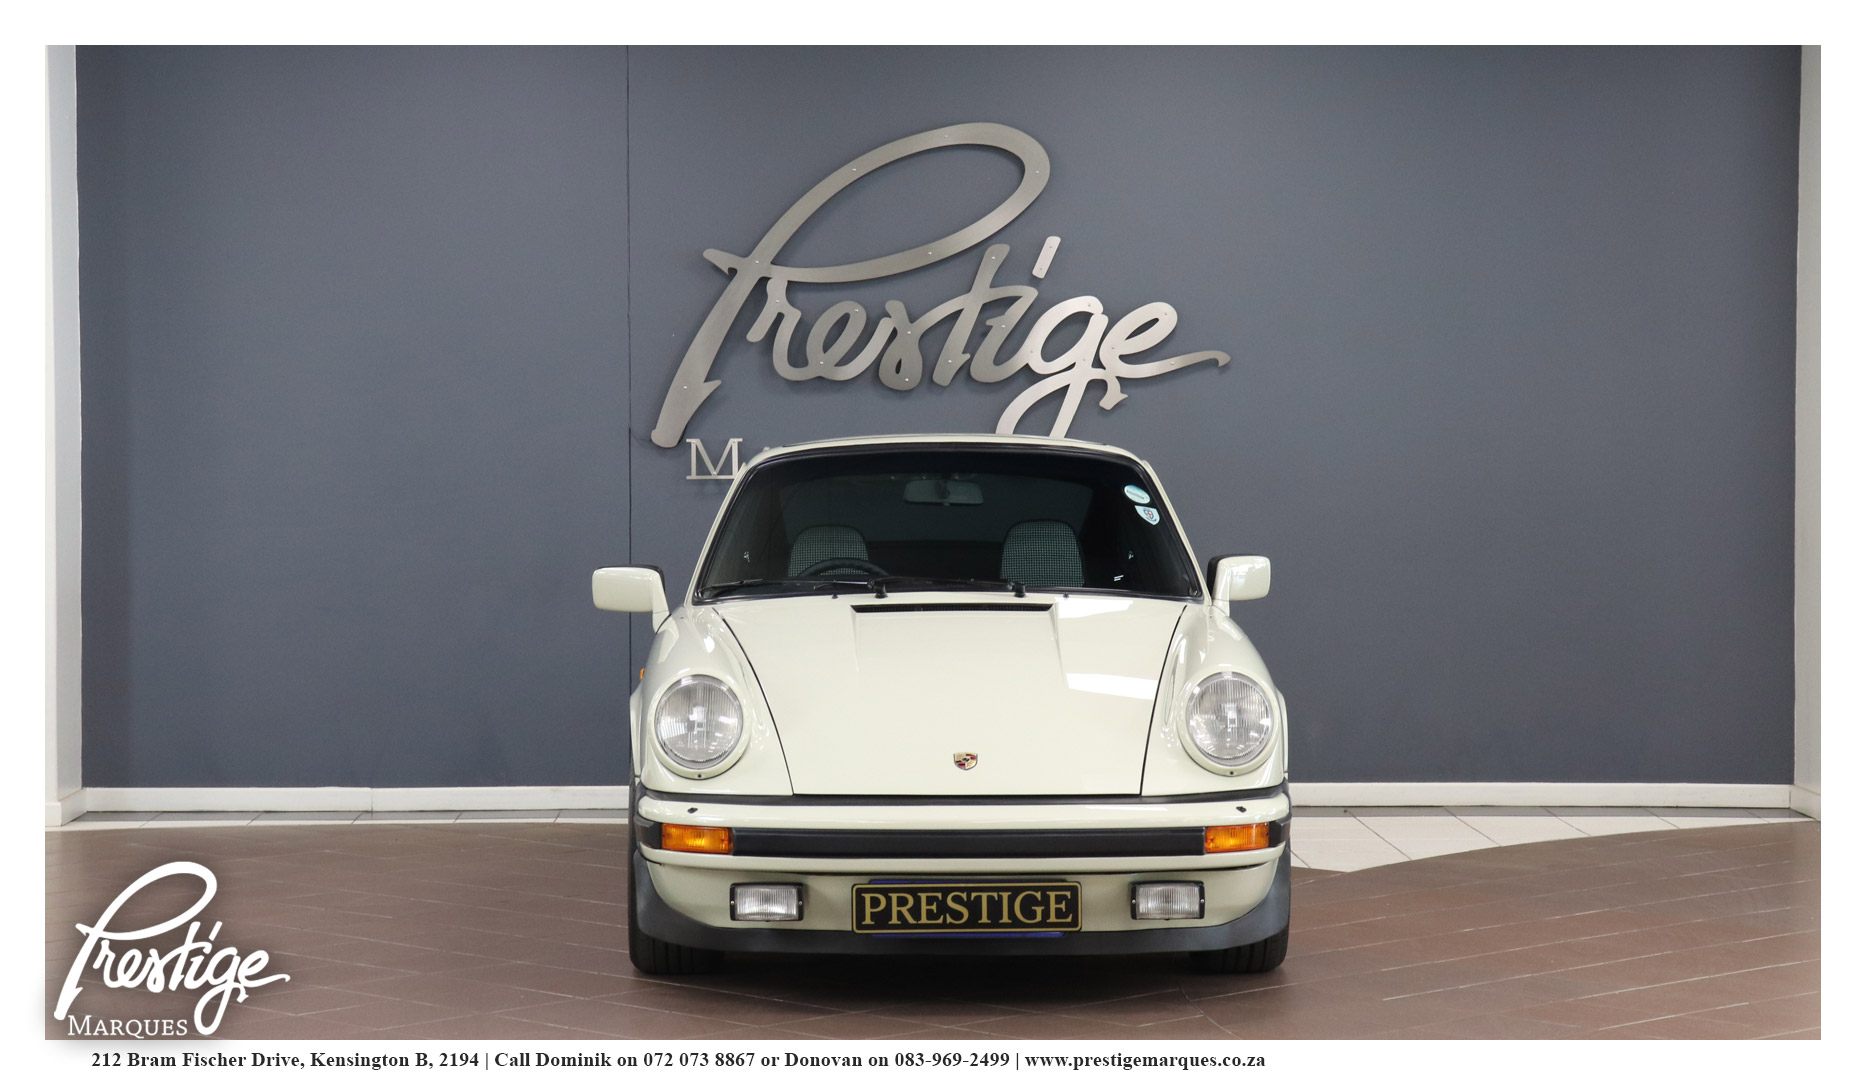 1982-Porsche-911-Carrera-20-Year-Anniversary-Tribute-Build-Prestige-Marques-Randburg-Sandton-8